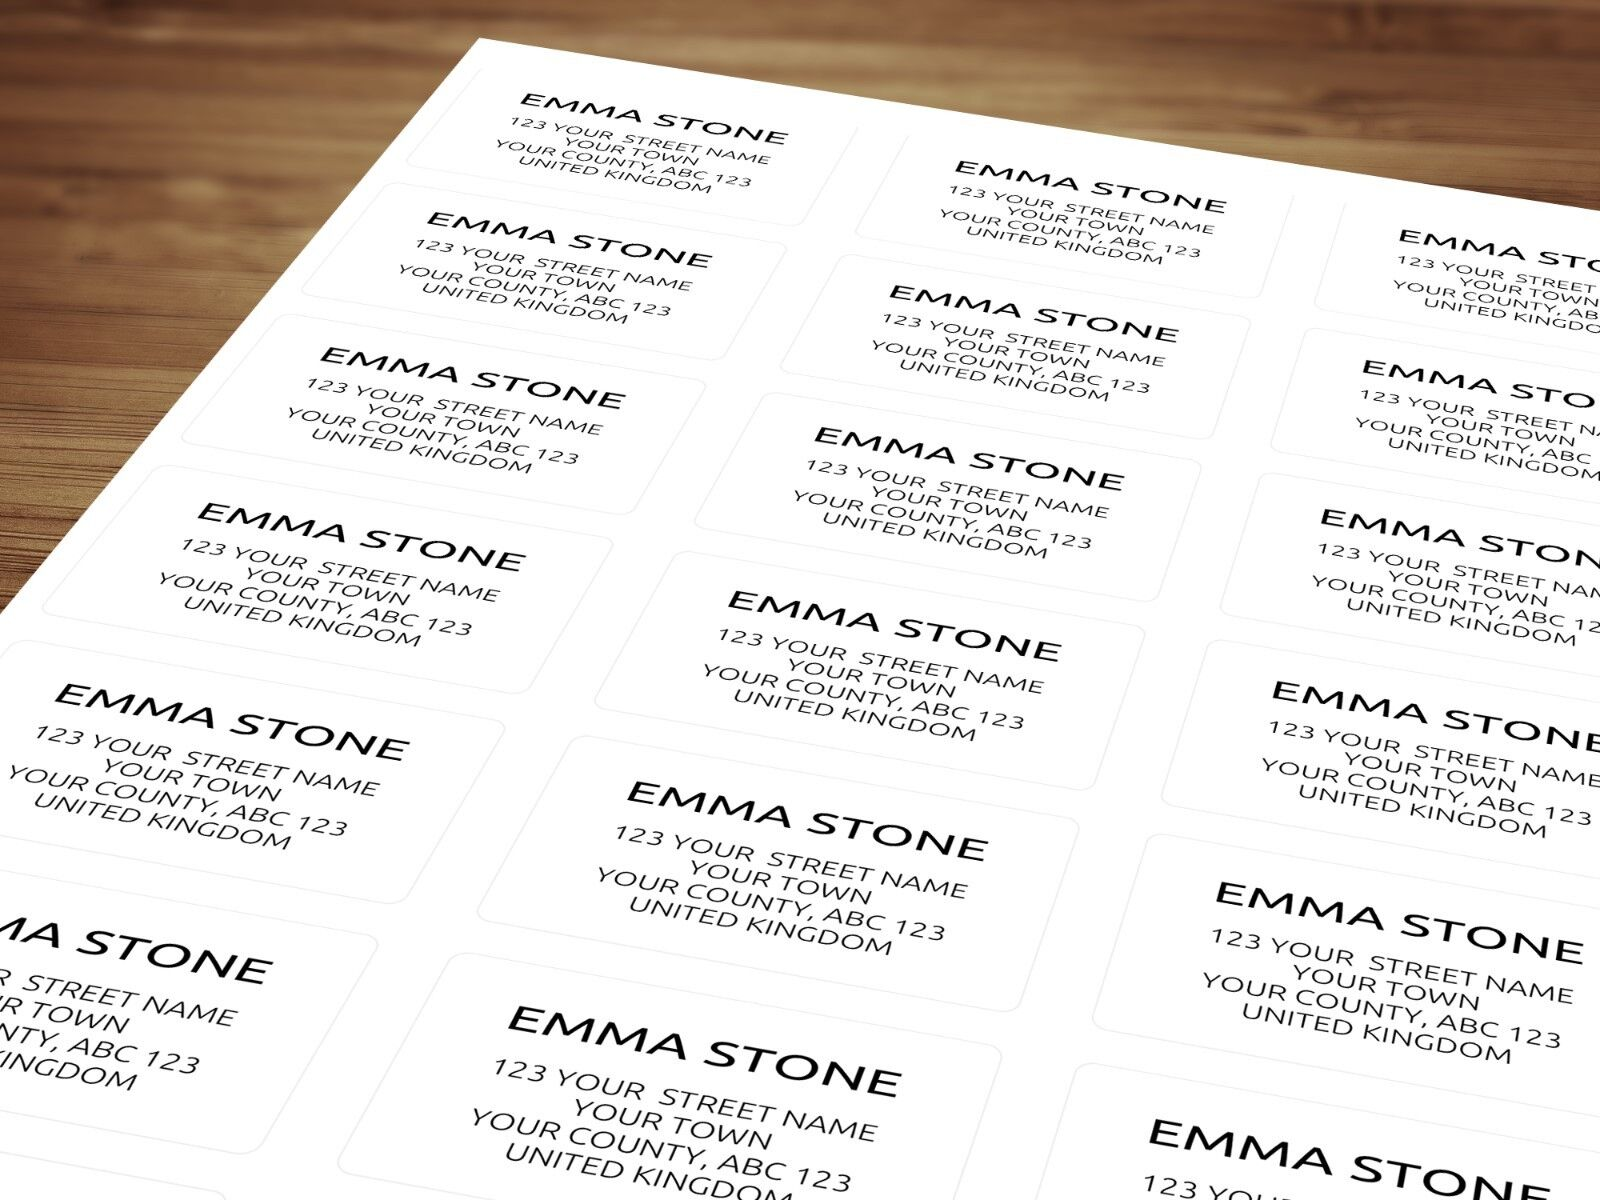 Details about personalized return address labels stickers for post modern minimal design